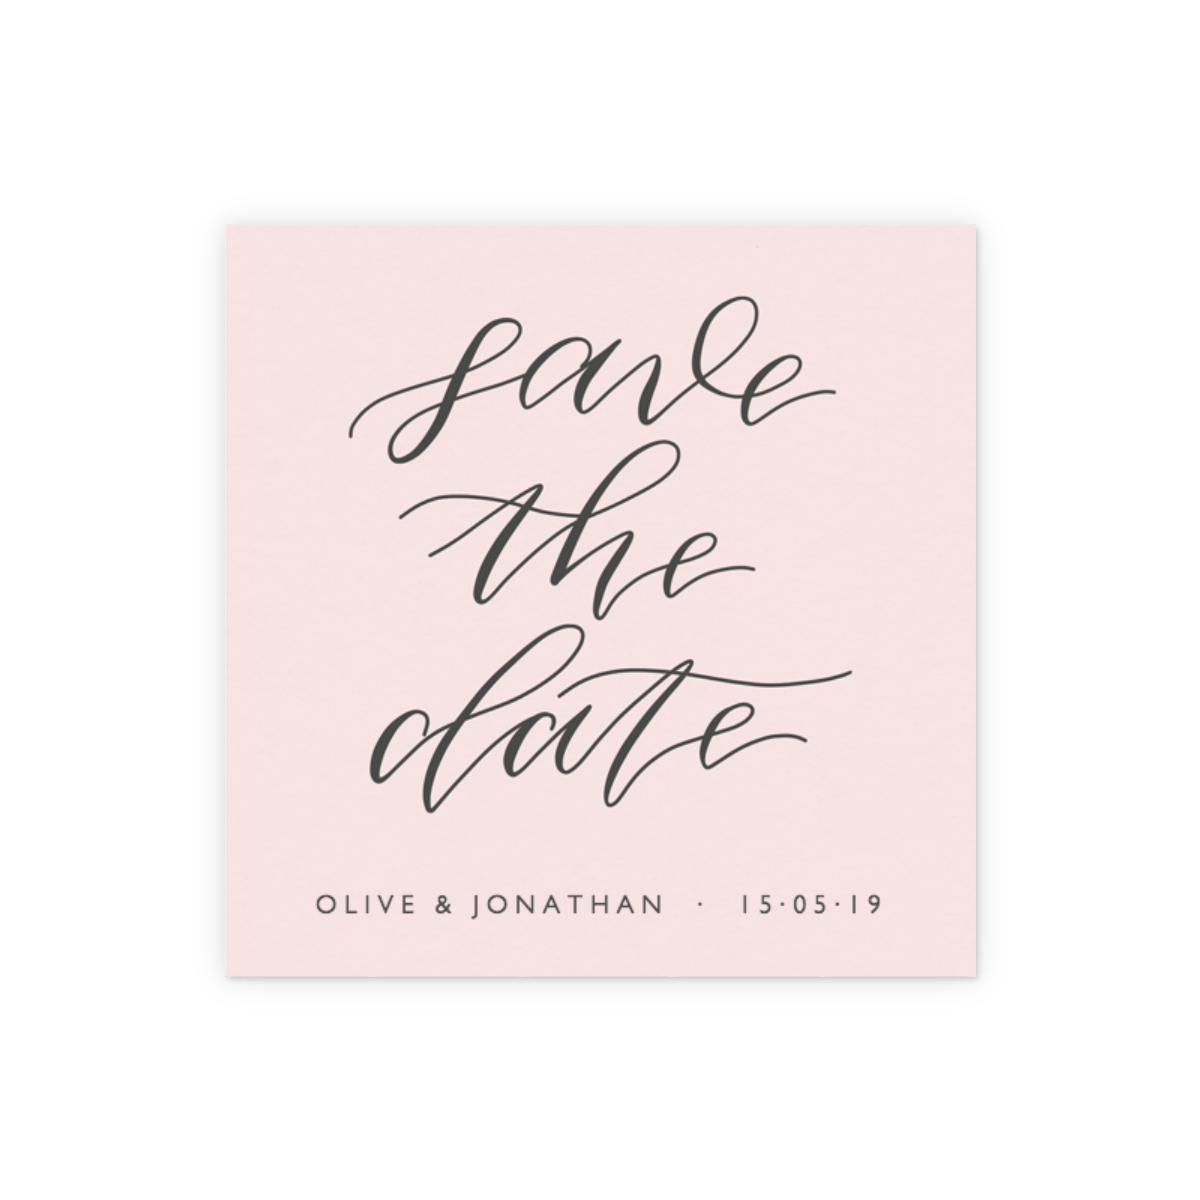 Https%3a%2f%2fwww.papier.com%2fproduct image%2f7336%2f11%2fsave the date pink calligraphy 1780 front 1534323222.png?ixlib=rb 1.1